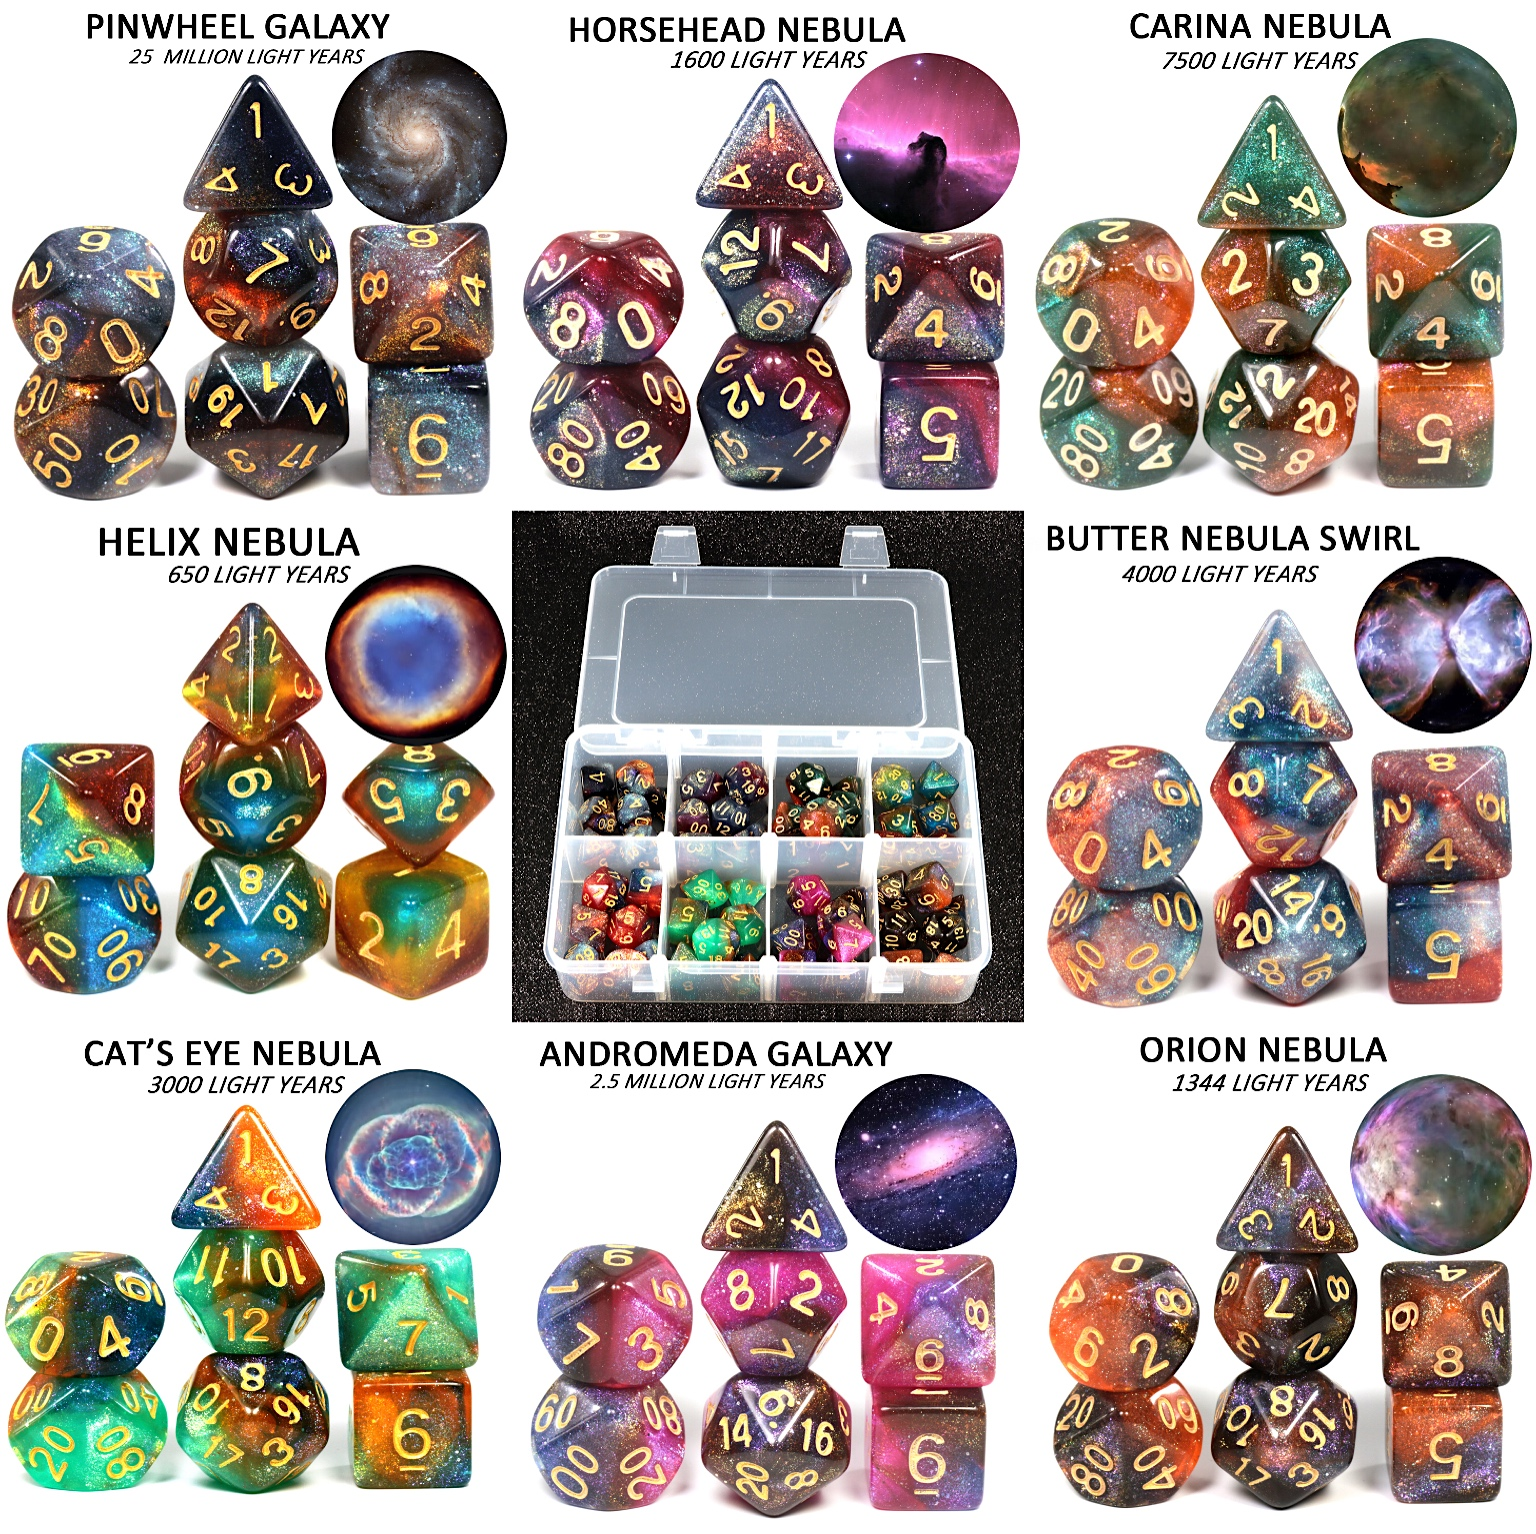 56PCS/Box Cosmic Galaxy Concept Dice Role Playing Game Table  Accessories  8 Themes Christmas Gift Board Game